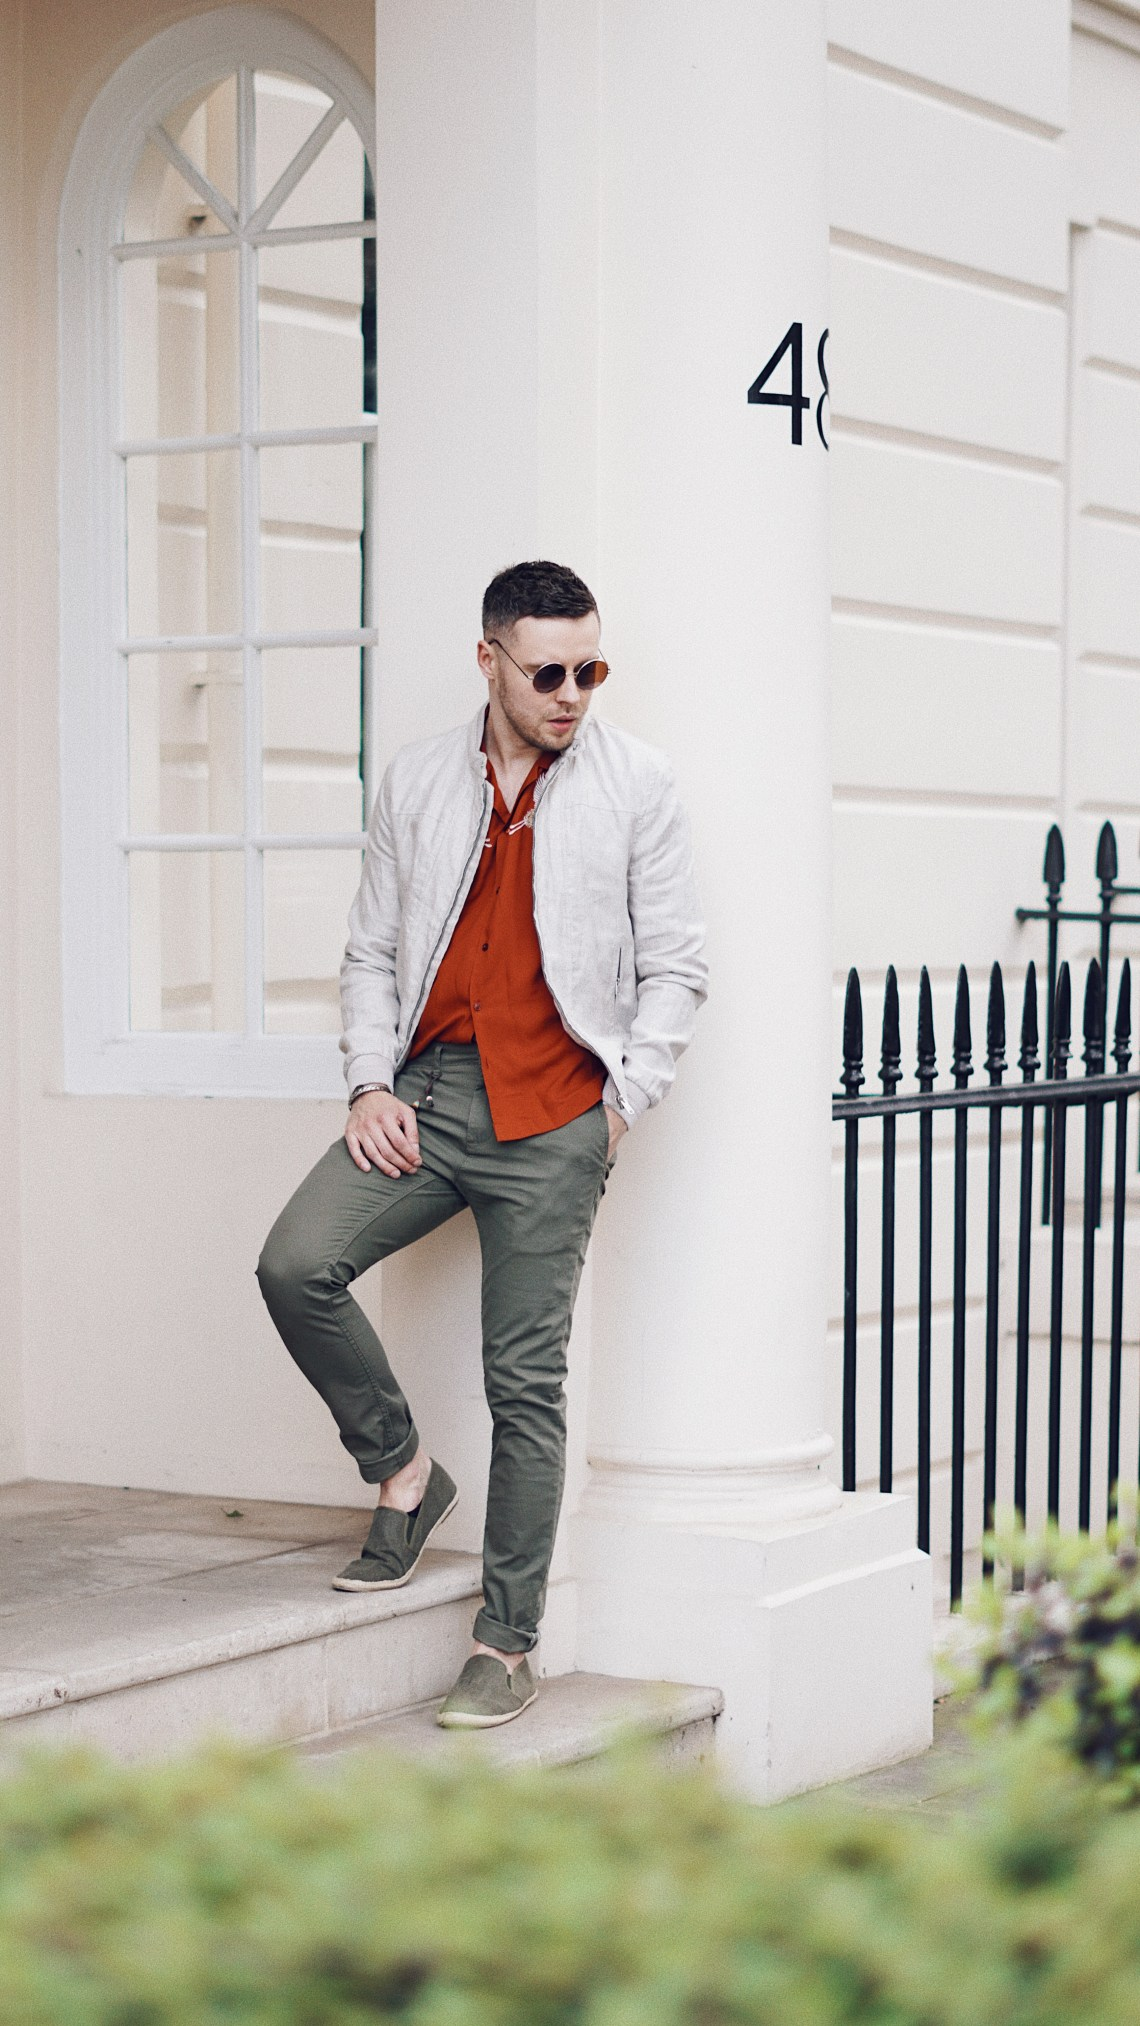 Millbank Haze. Wearing Loom Crane Vacation Shirt from Urban Outfitters, Linen Jacket from Zara, Basic Chinos from Zara and Green Slip On Shoes from Primark. / Mr. Salt and Pepper blog by Skirmantas Petraitis